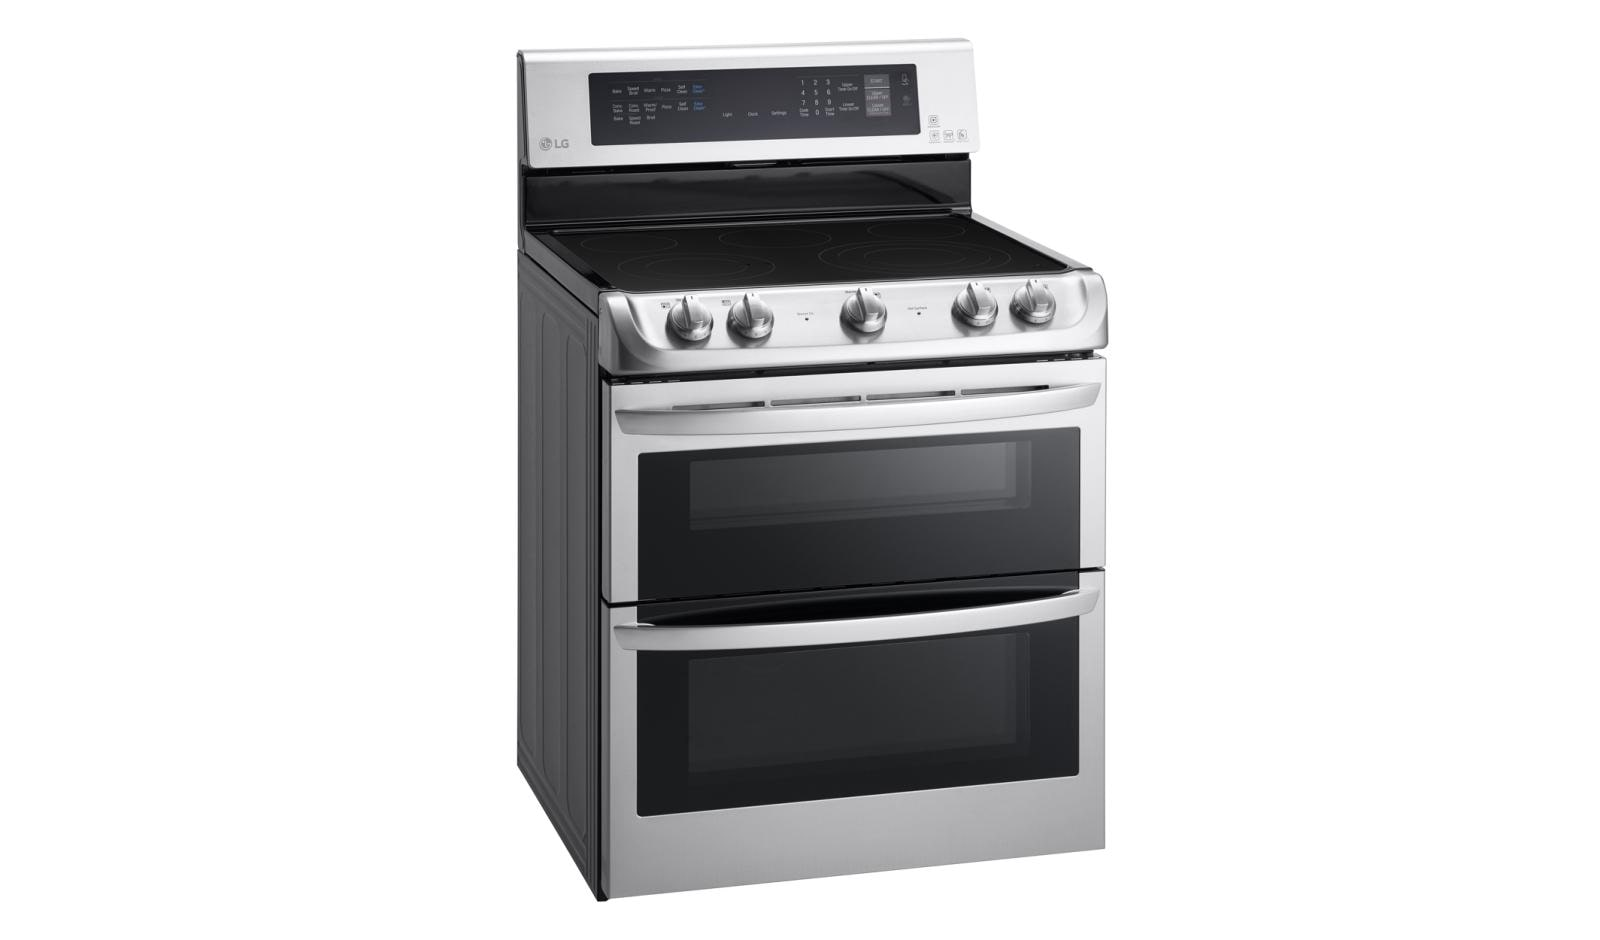 Lg Lde4415st Electric Double Oven Convection Range Usa Want To Install A New 40 Amp Have 50 Circuit